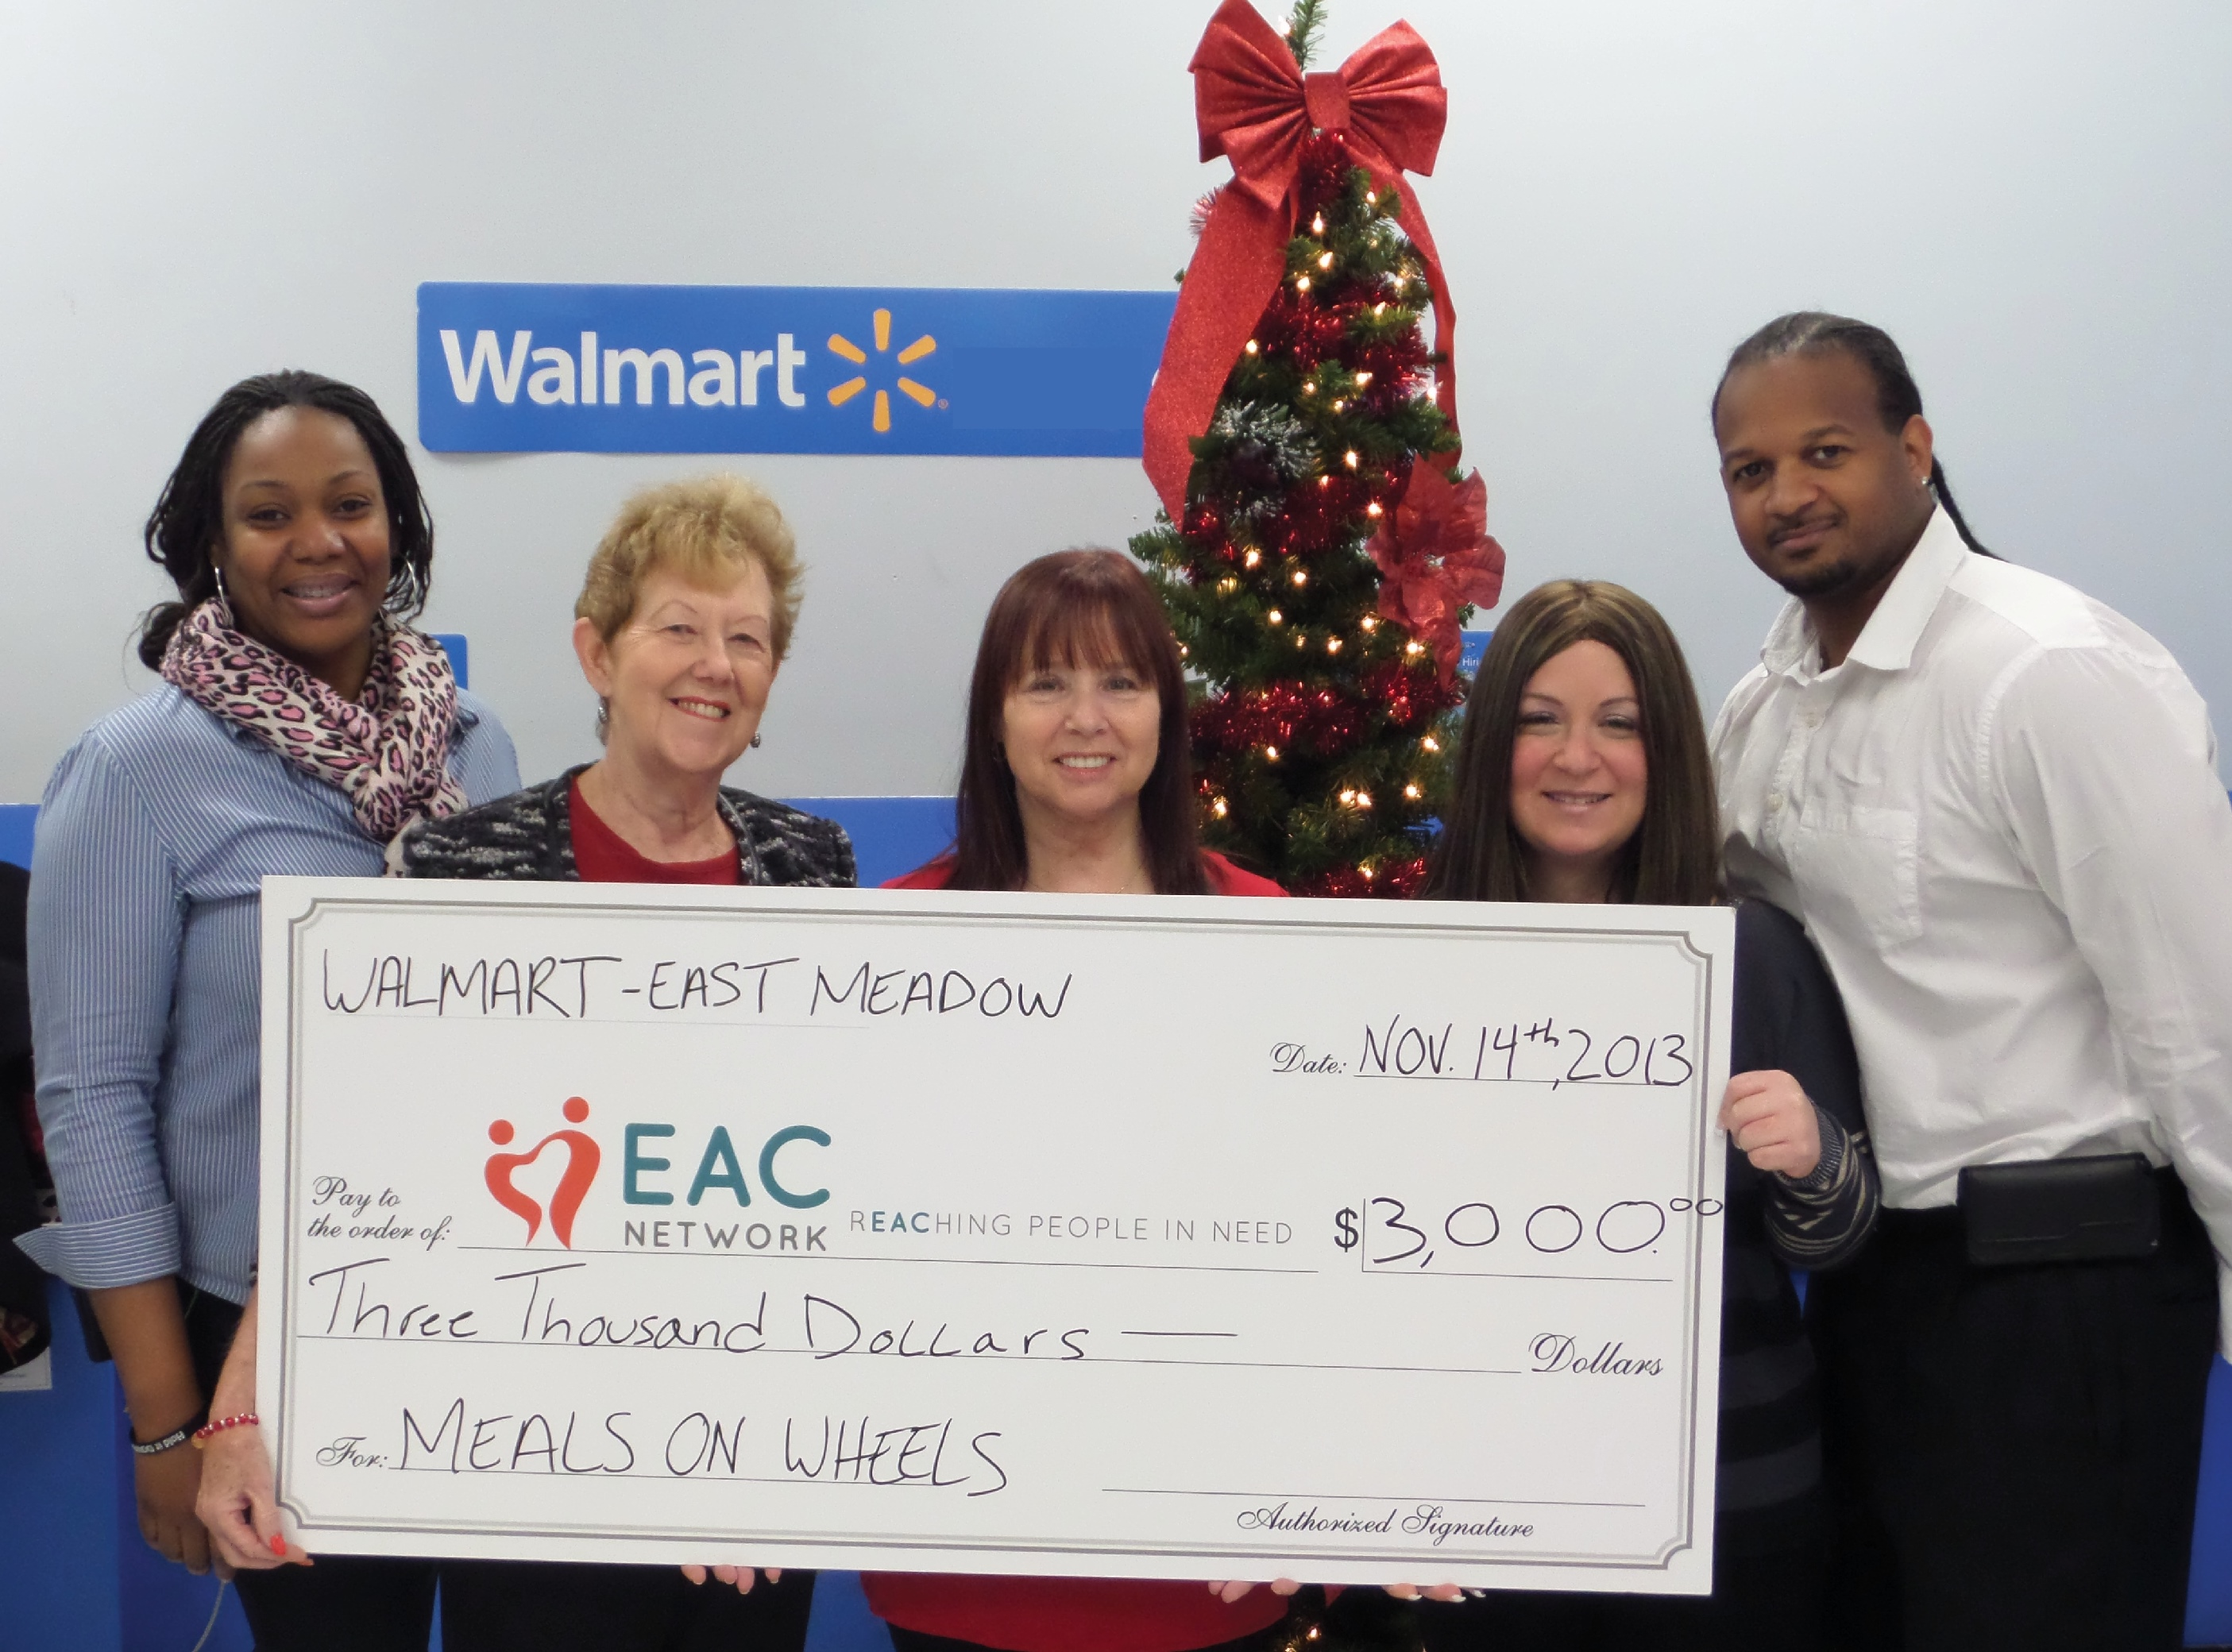 East Meadow Walmart Supports Meals-On-Wheels | Plainview, NY Patch